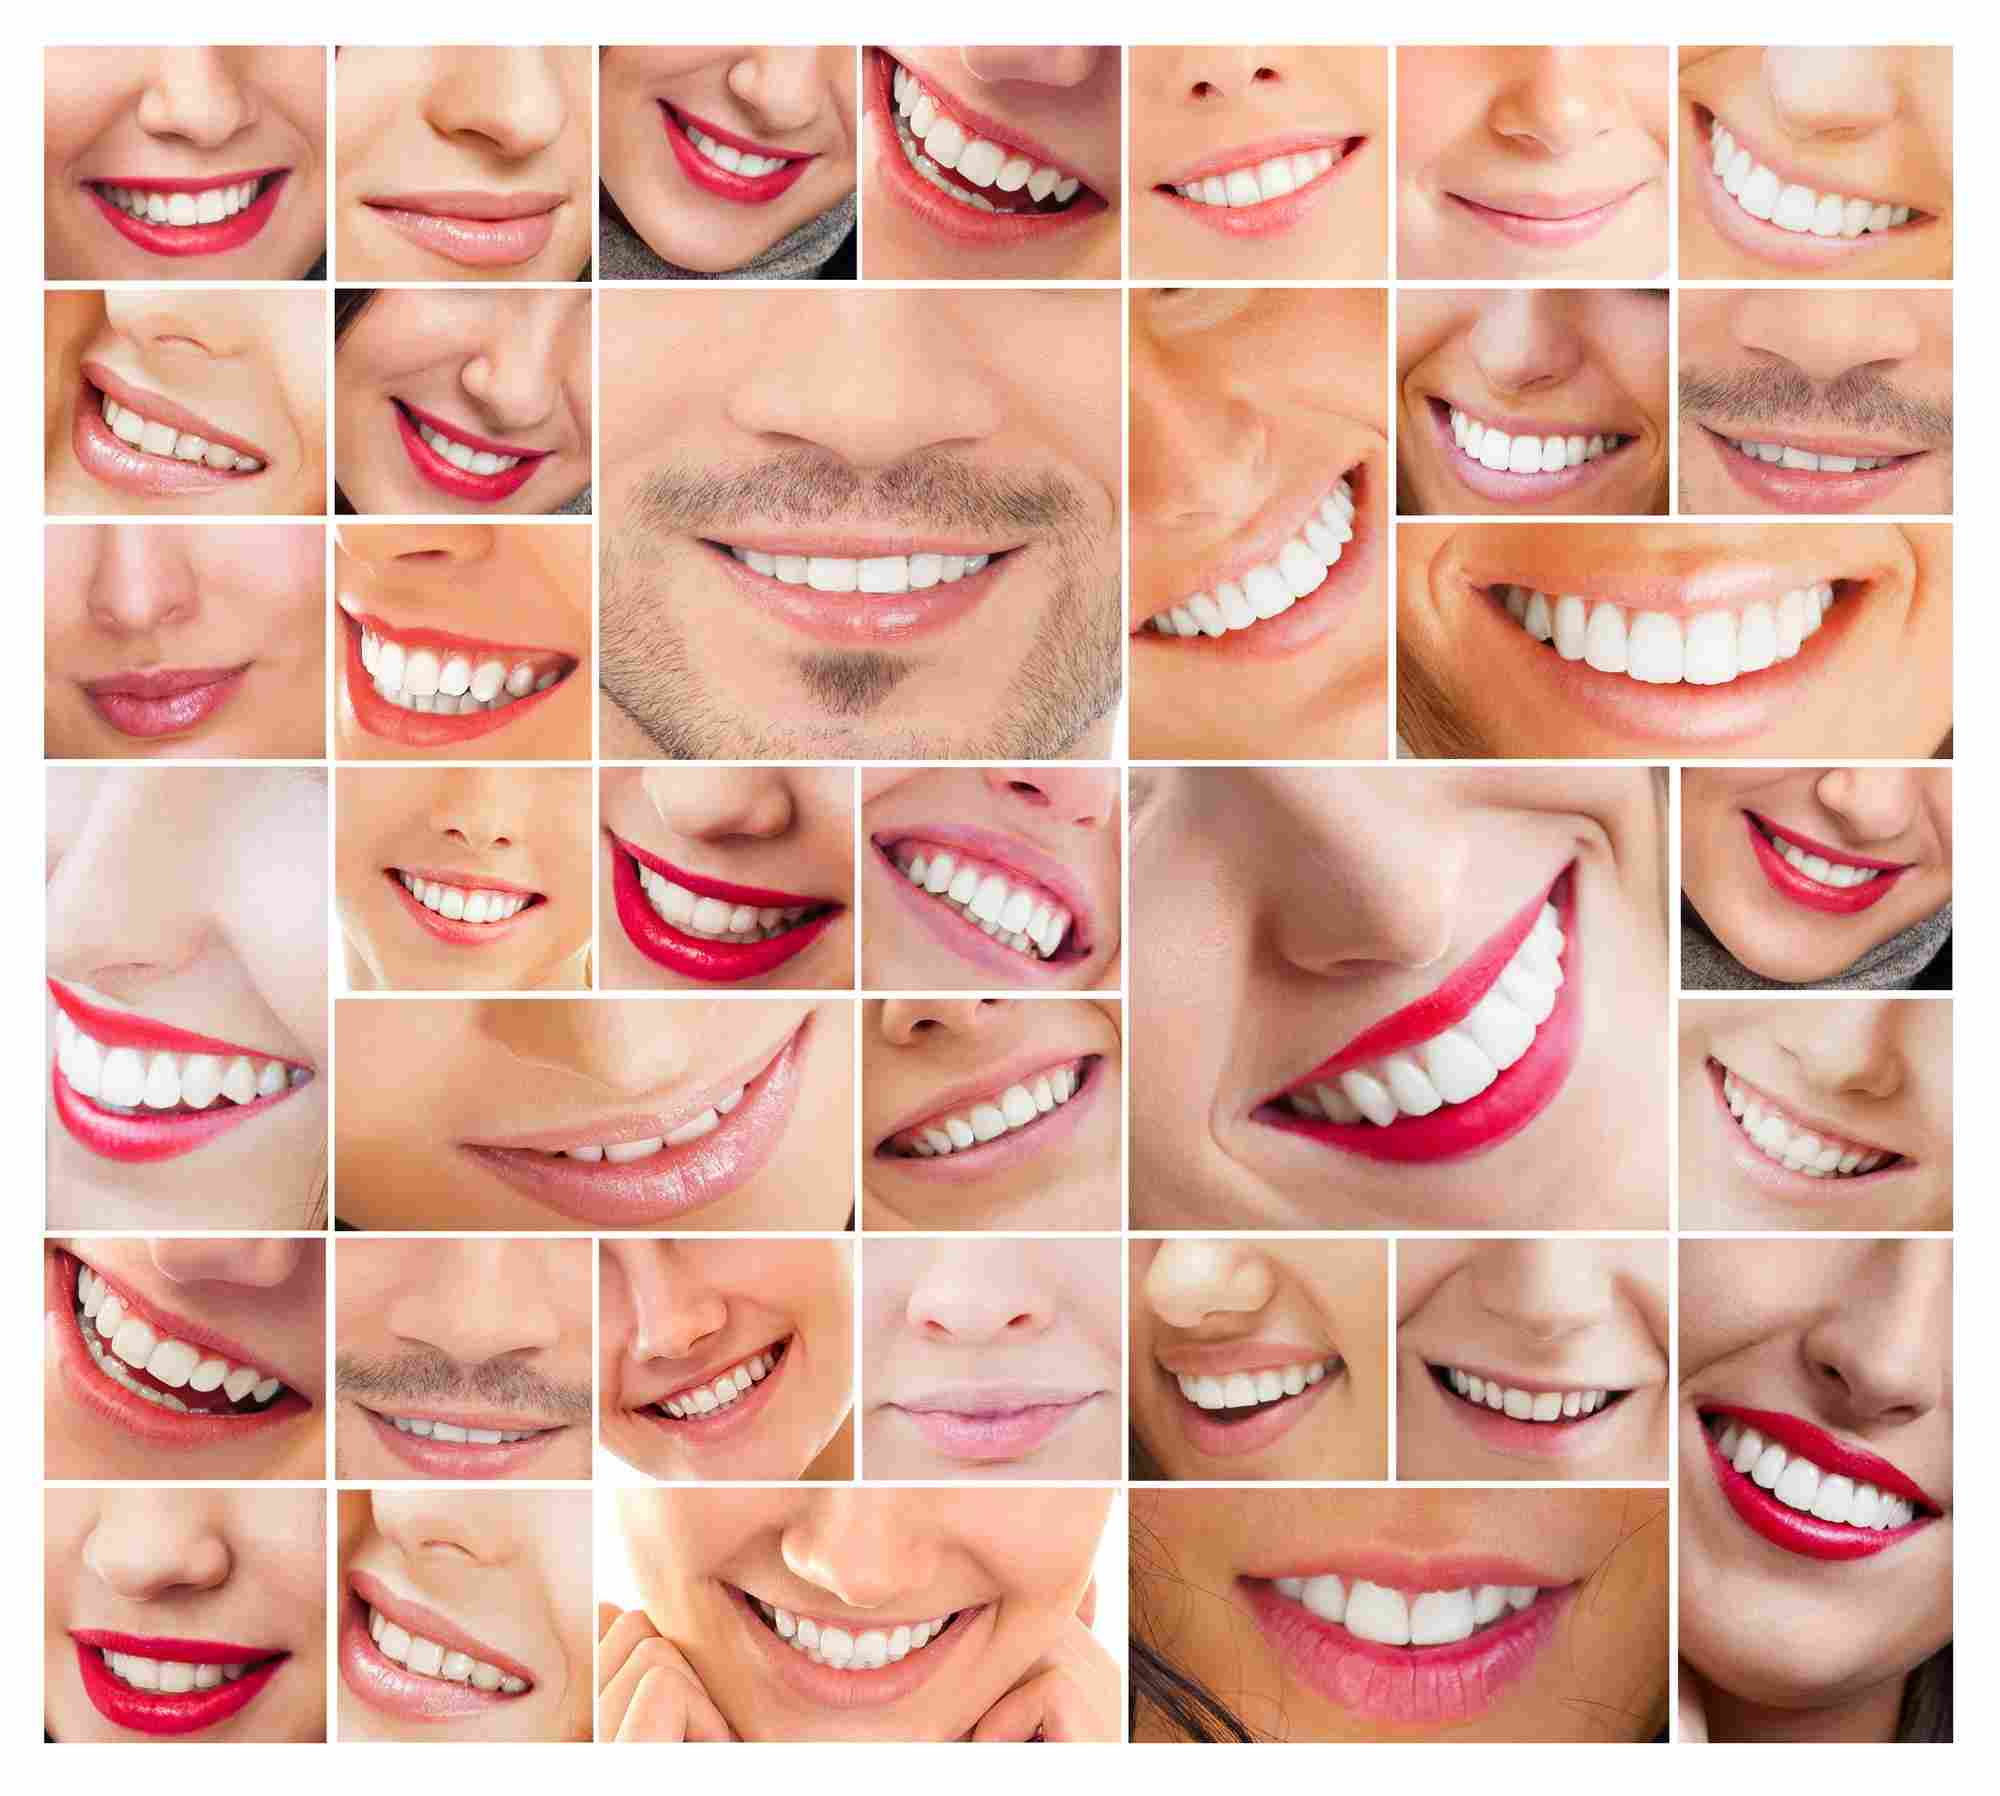 Meet the new dental guidelines. They's same as the old guidelines.